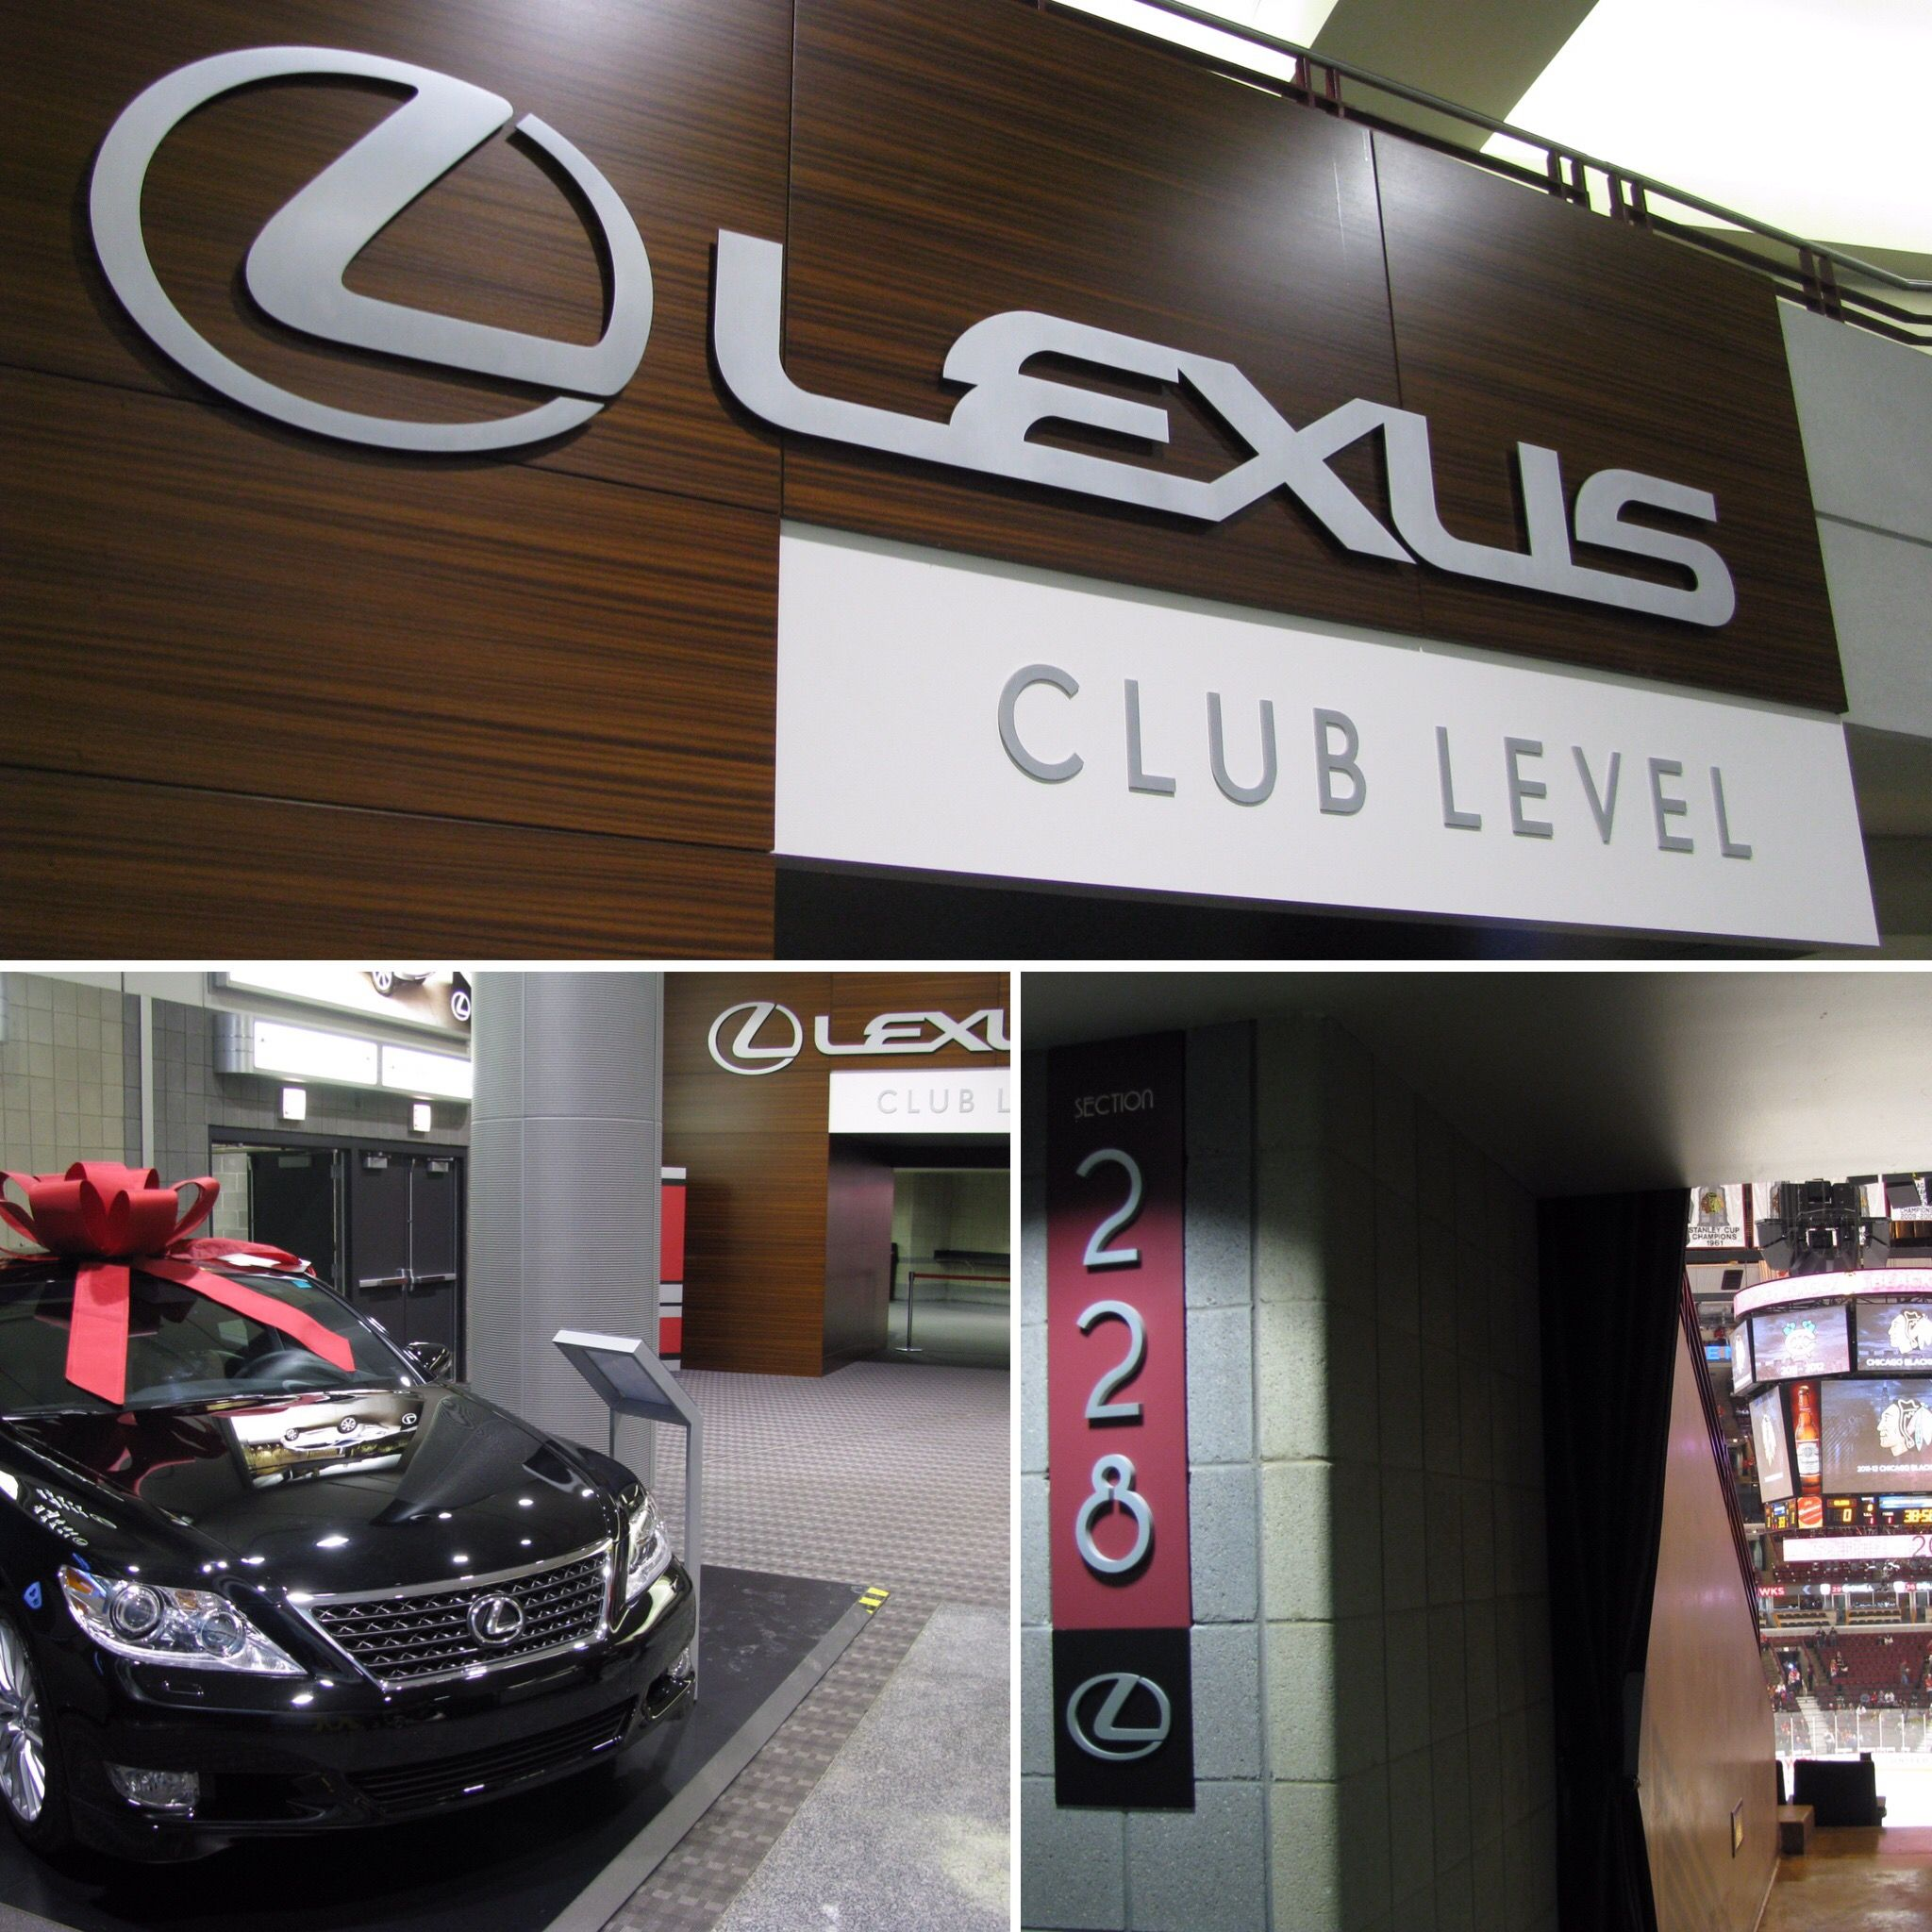 Lexus Club Level at the United Center, #Chicago (taken back in 2012